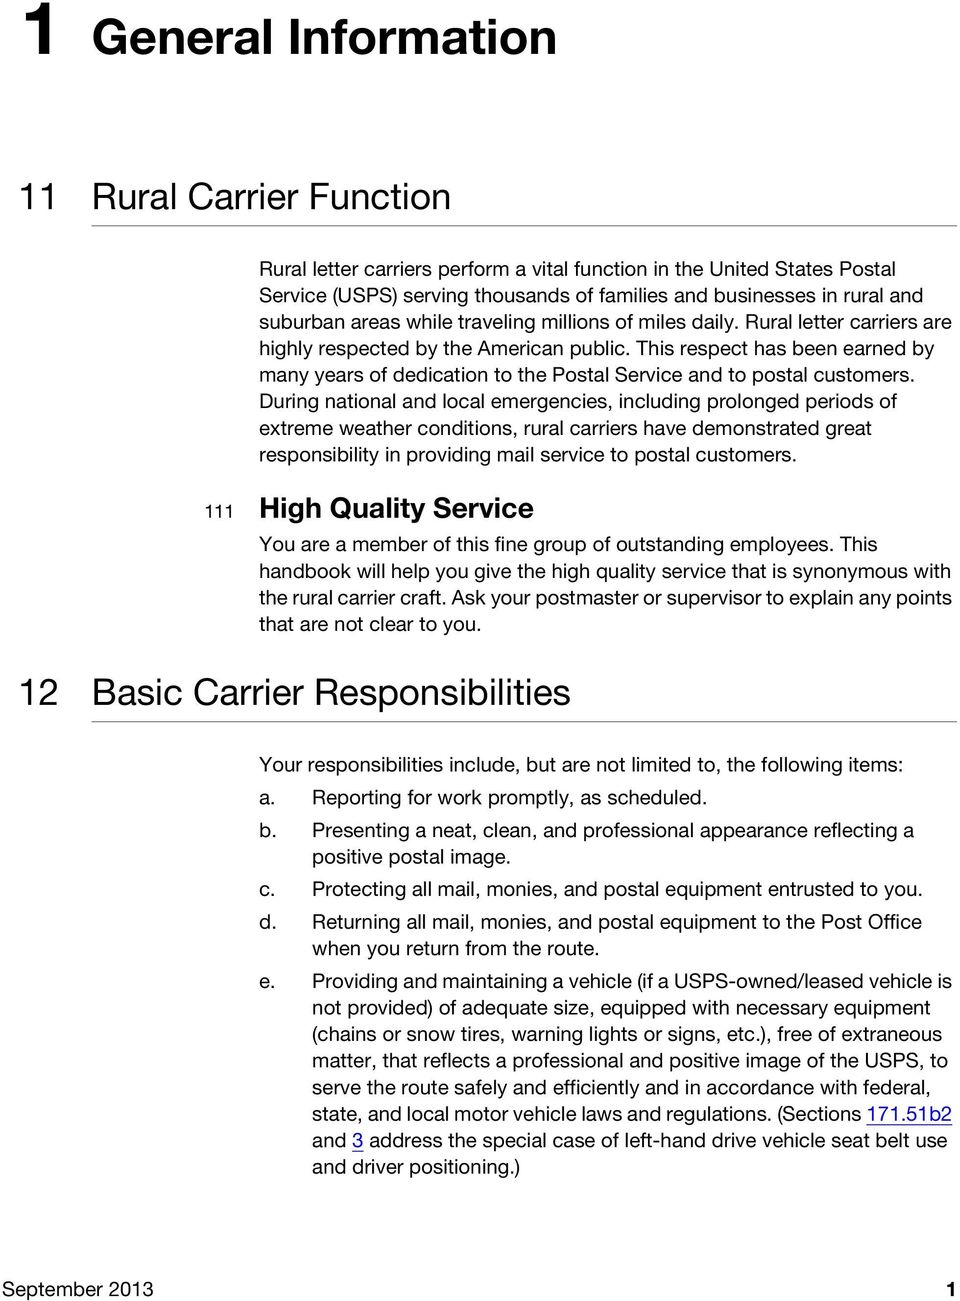 Rural Carrier Transmittal Duties and Letter Responsibilities